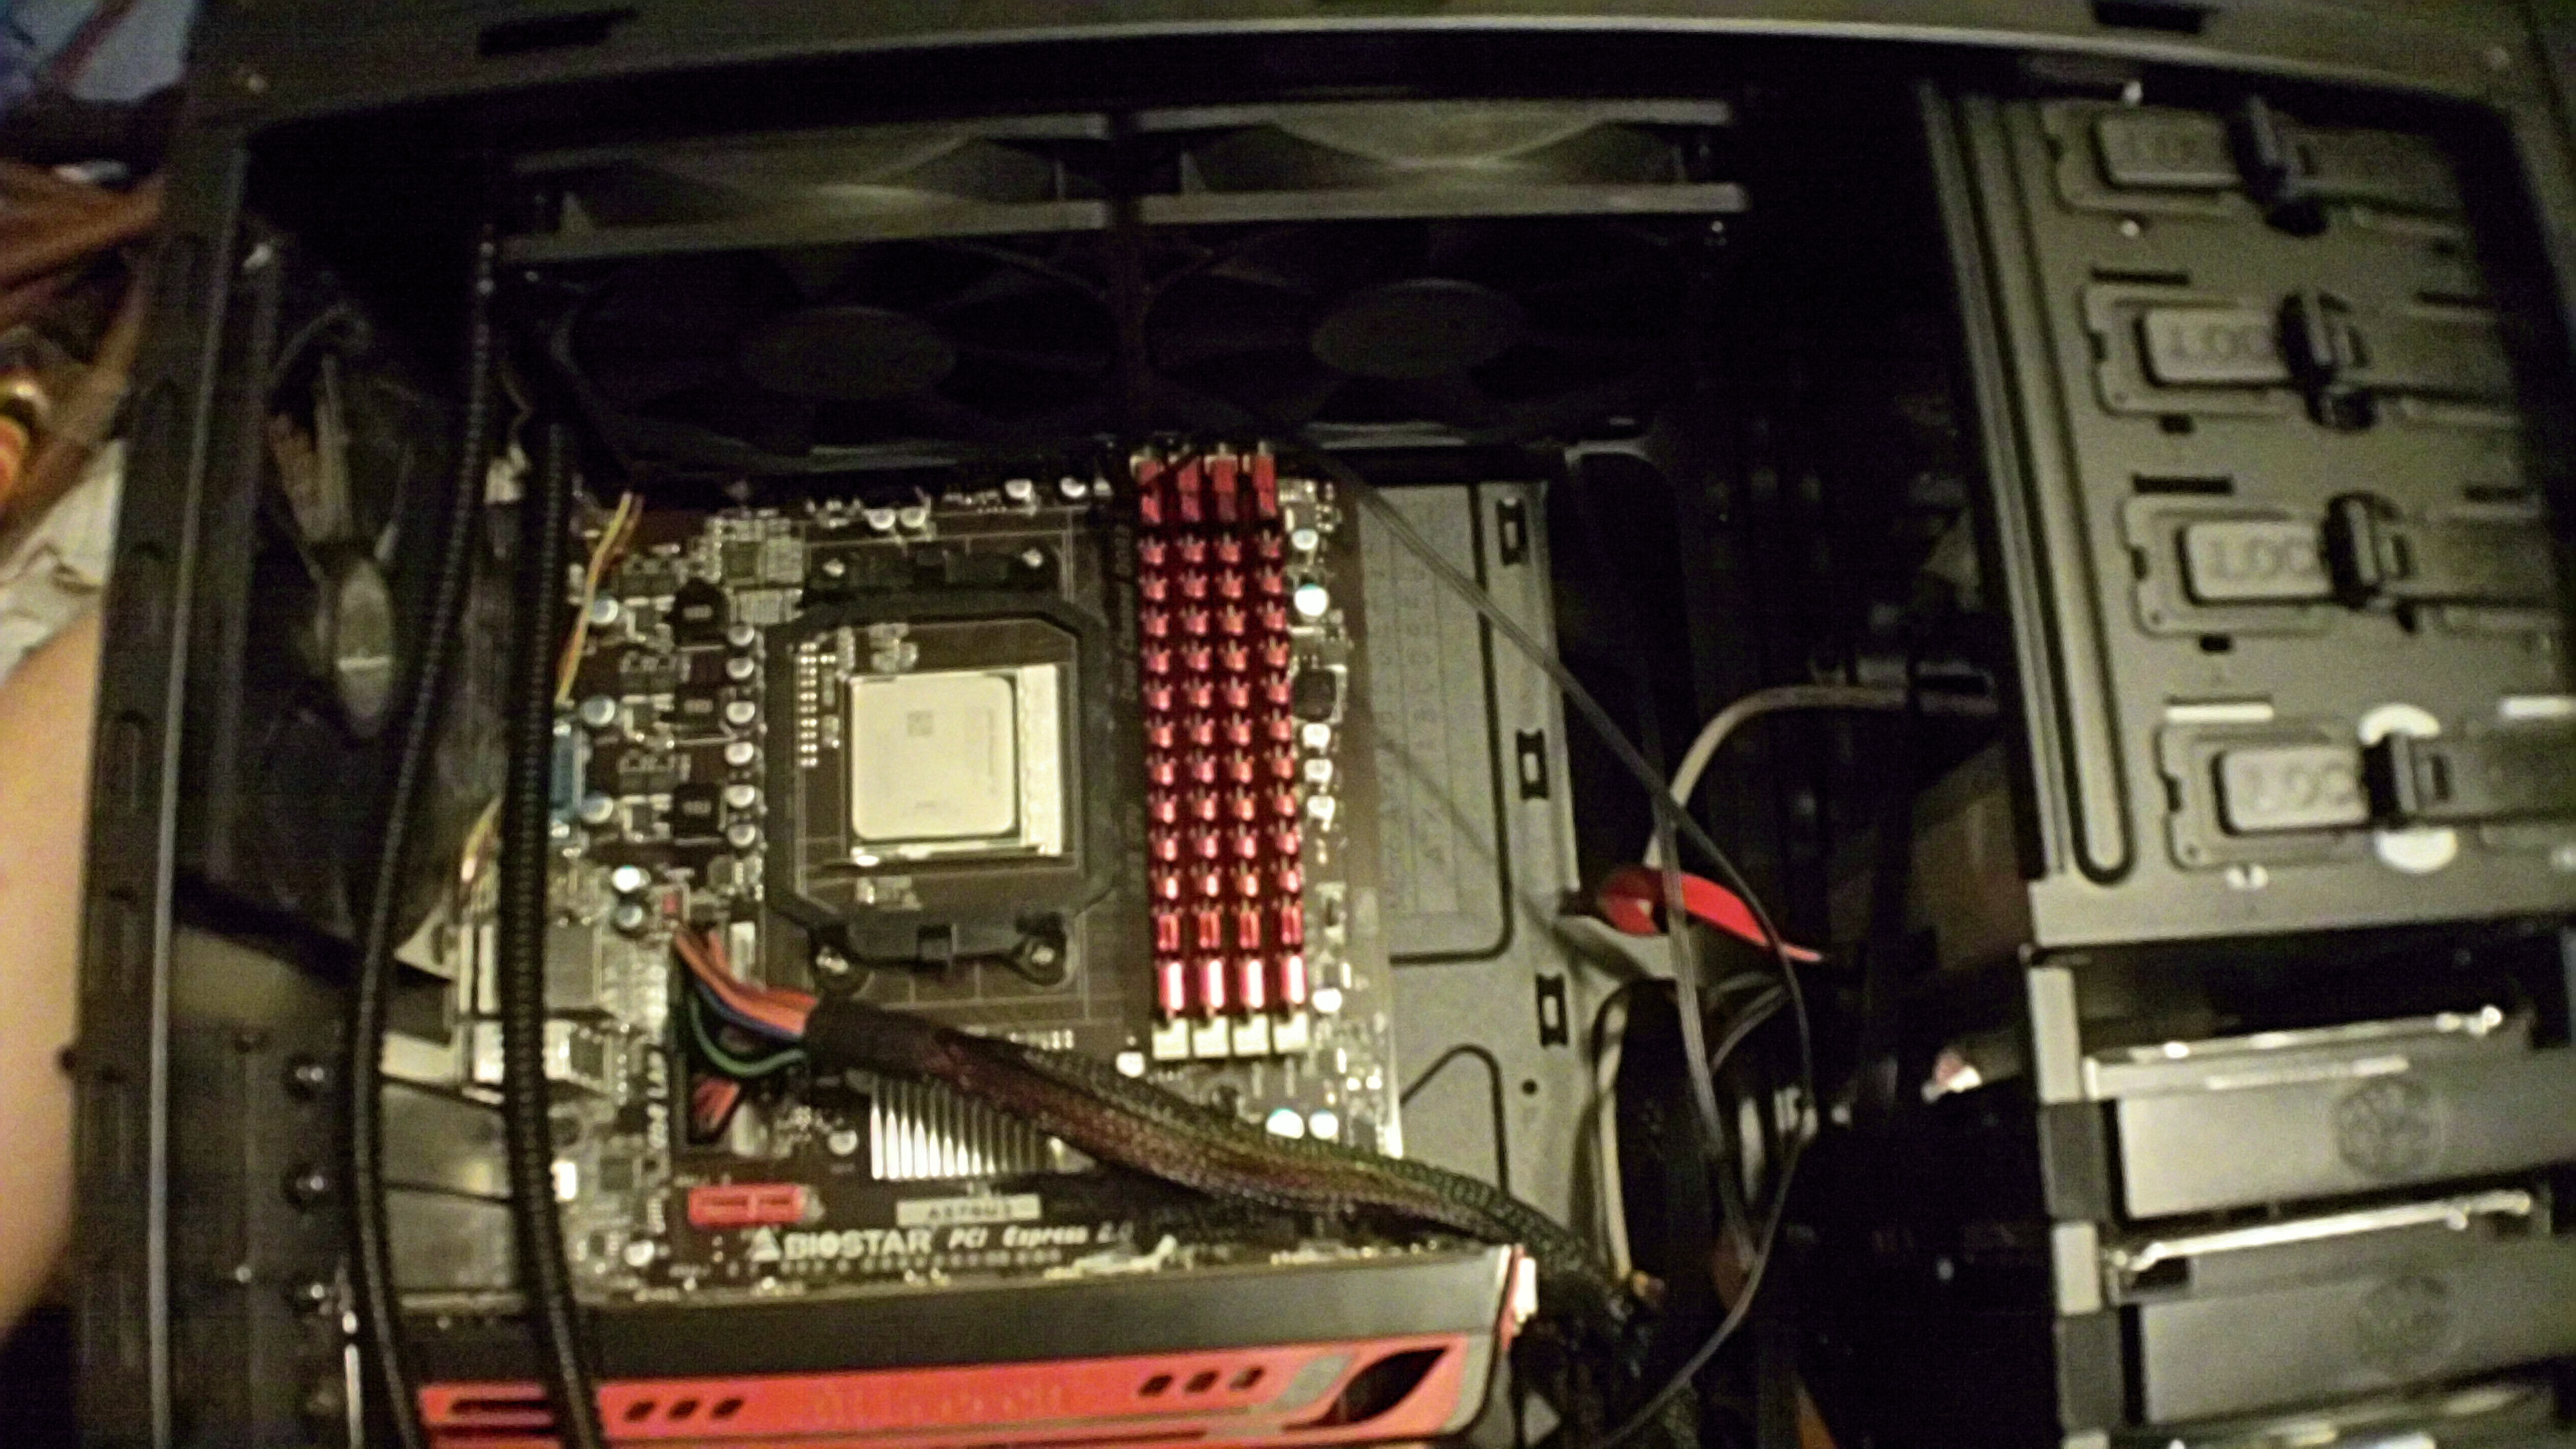 h100 rad/fans installed, just clears the ram.